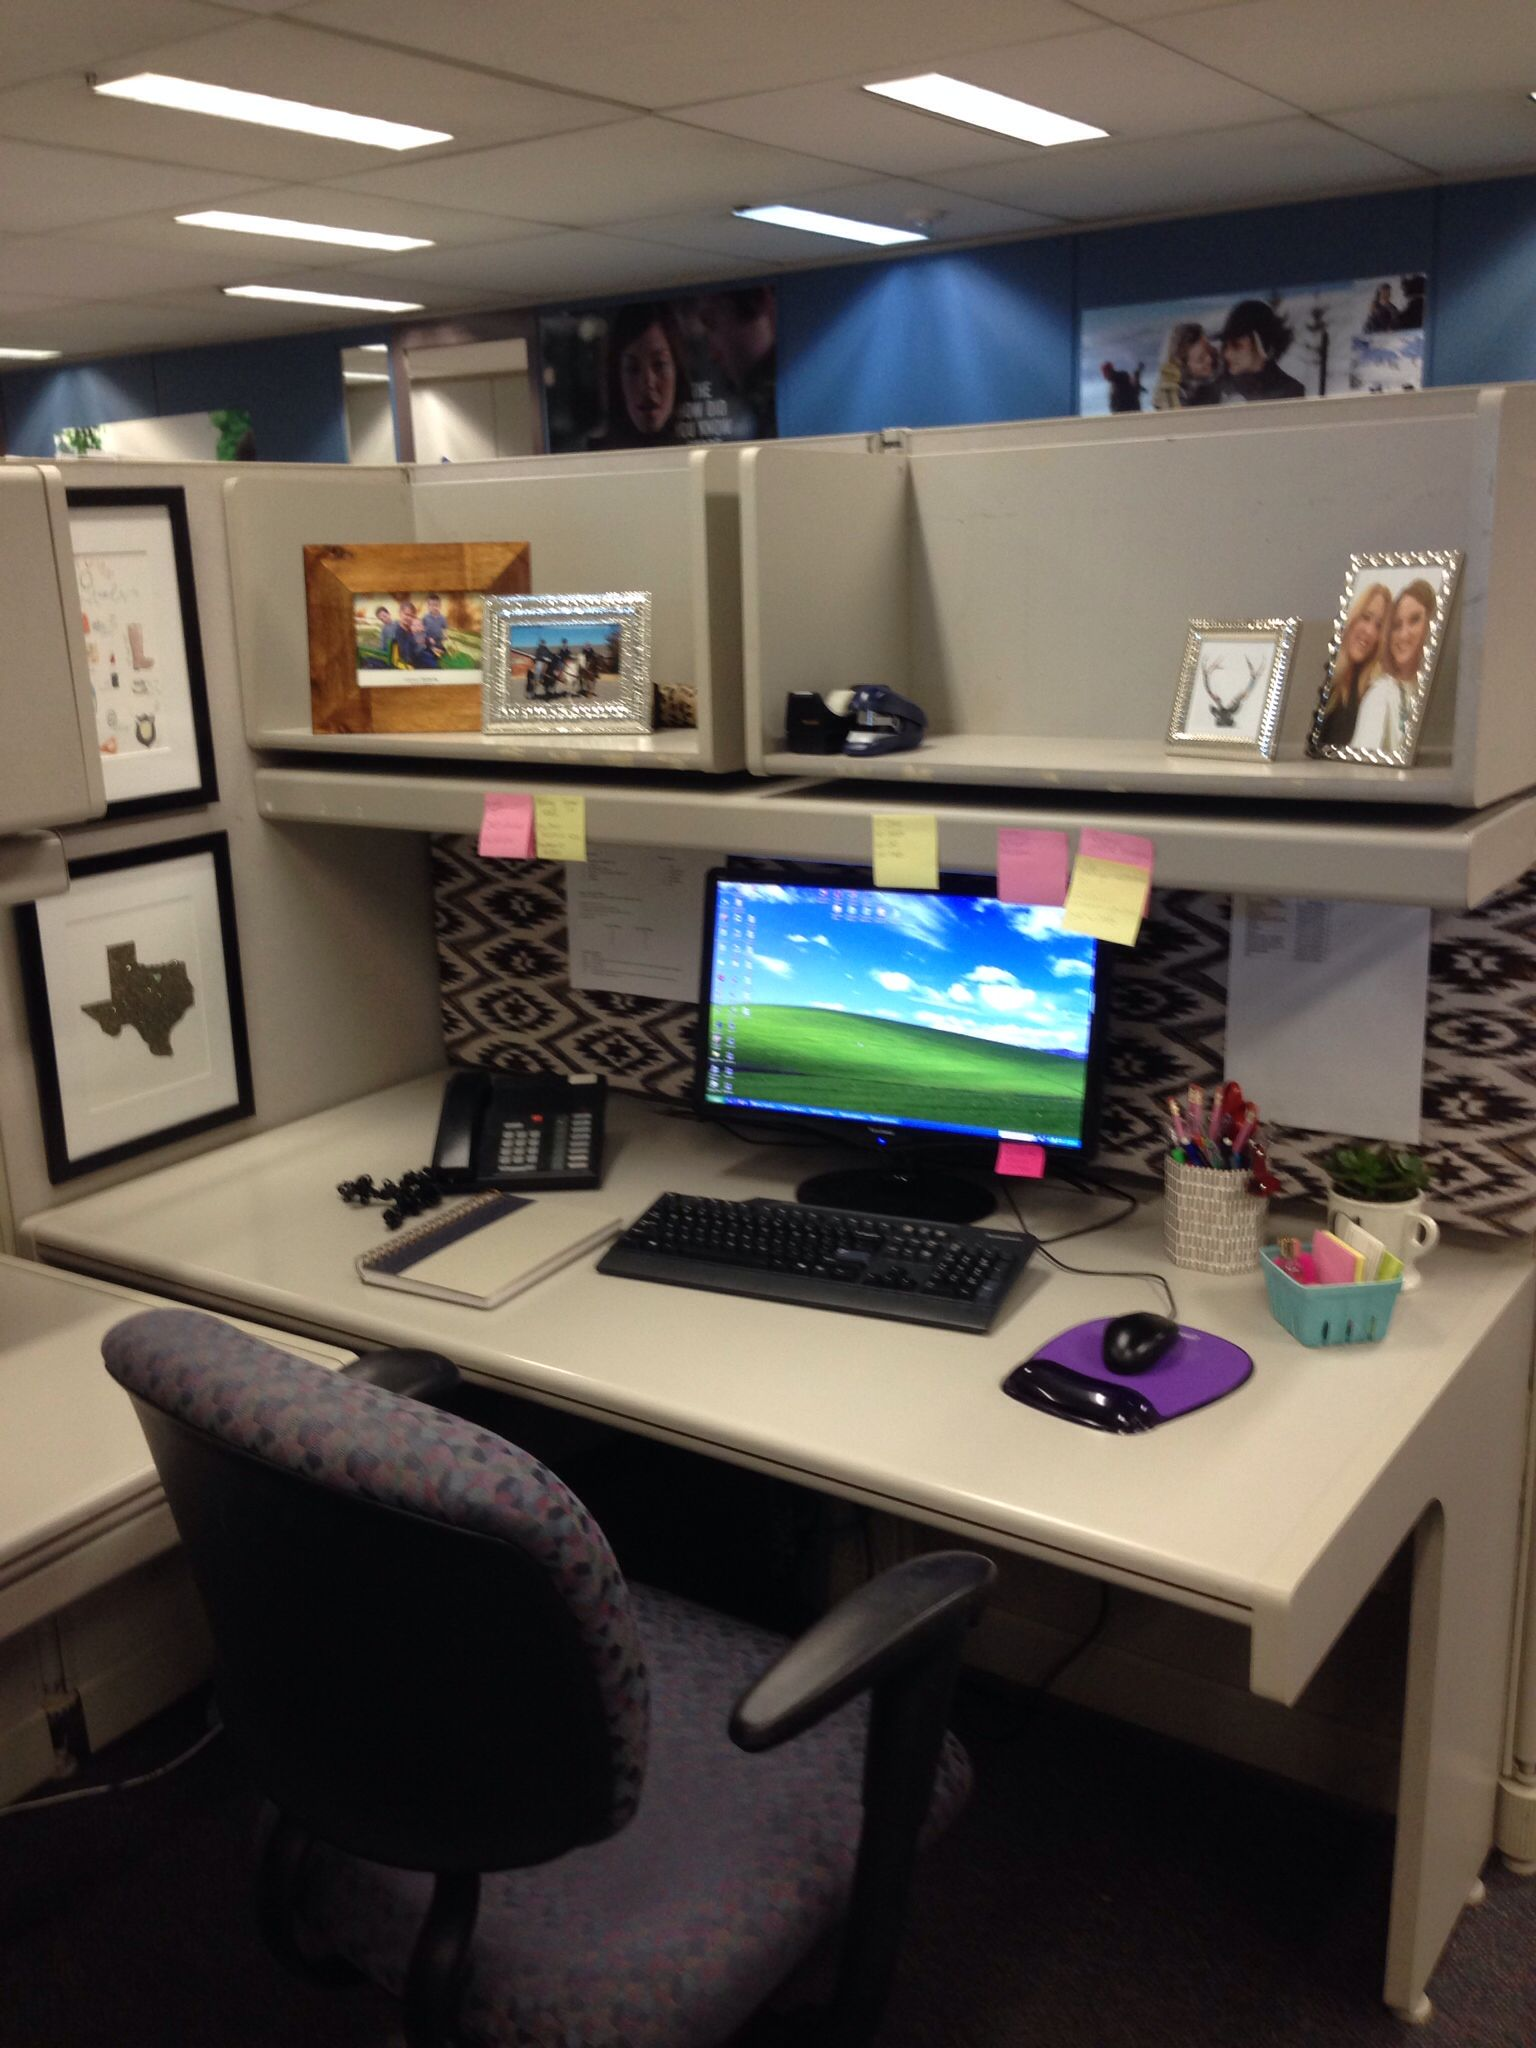 Cubicle decor a pop of pattern the working woman - Work office decorating ideas pictures ...